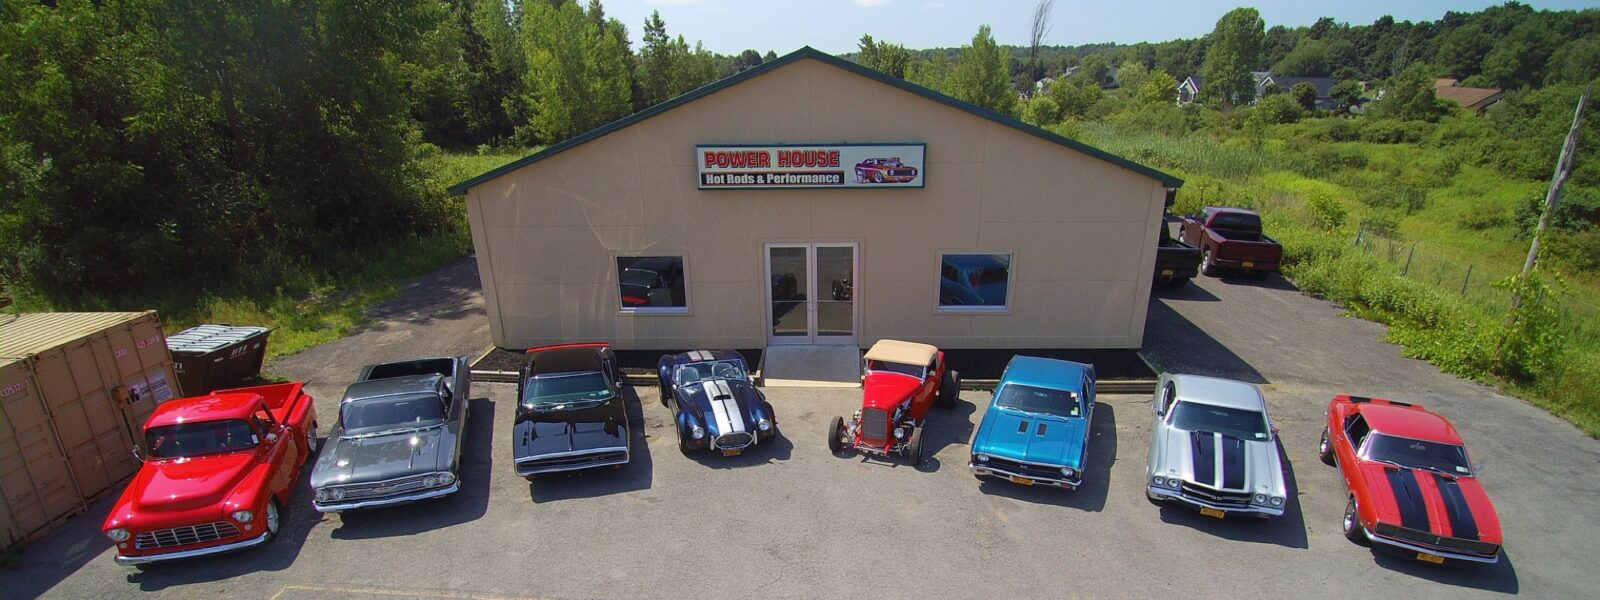 The Powerhouse shop from above with 8 sports cars lined up out front